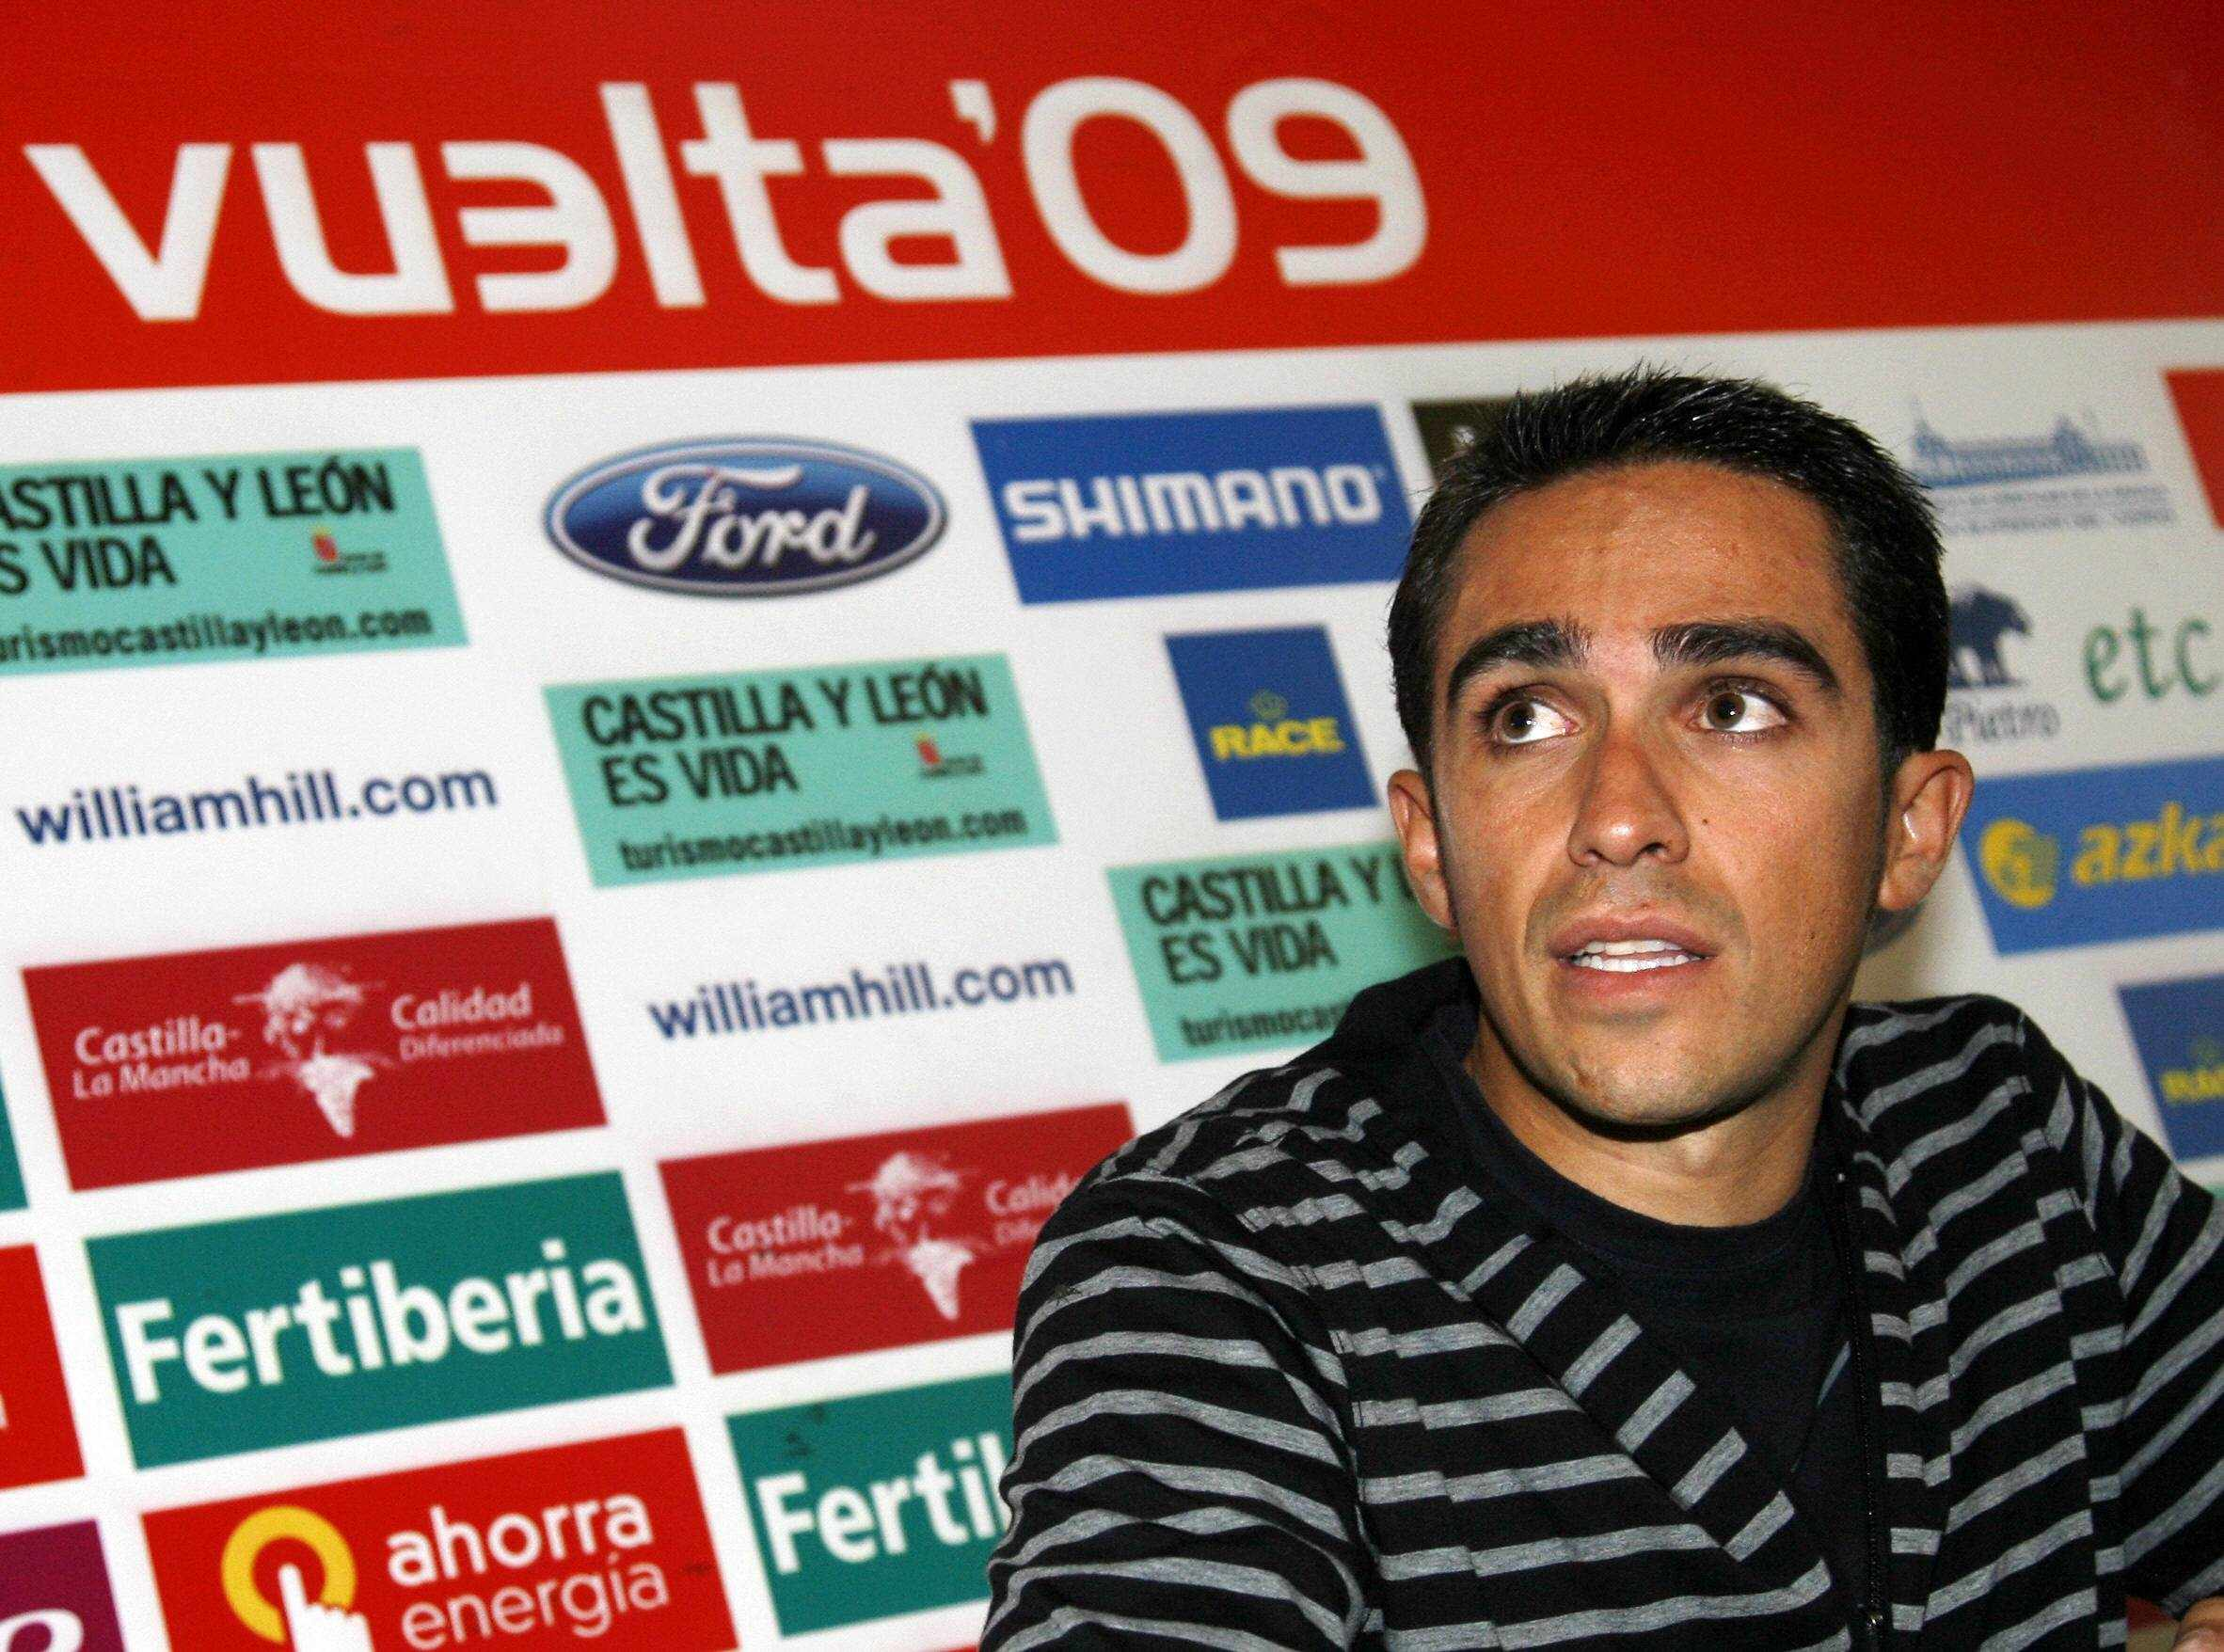 The world's number one ranked road racer and 2009 Tour de France winner Alberto Contador speaks during a press conference at stage 19 of the 2009 Tour of Spain, a race he won in 2008.